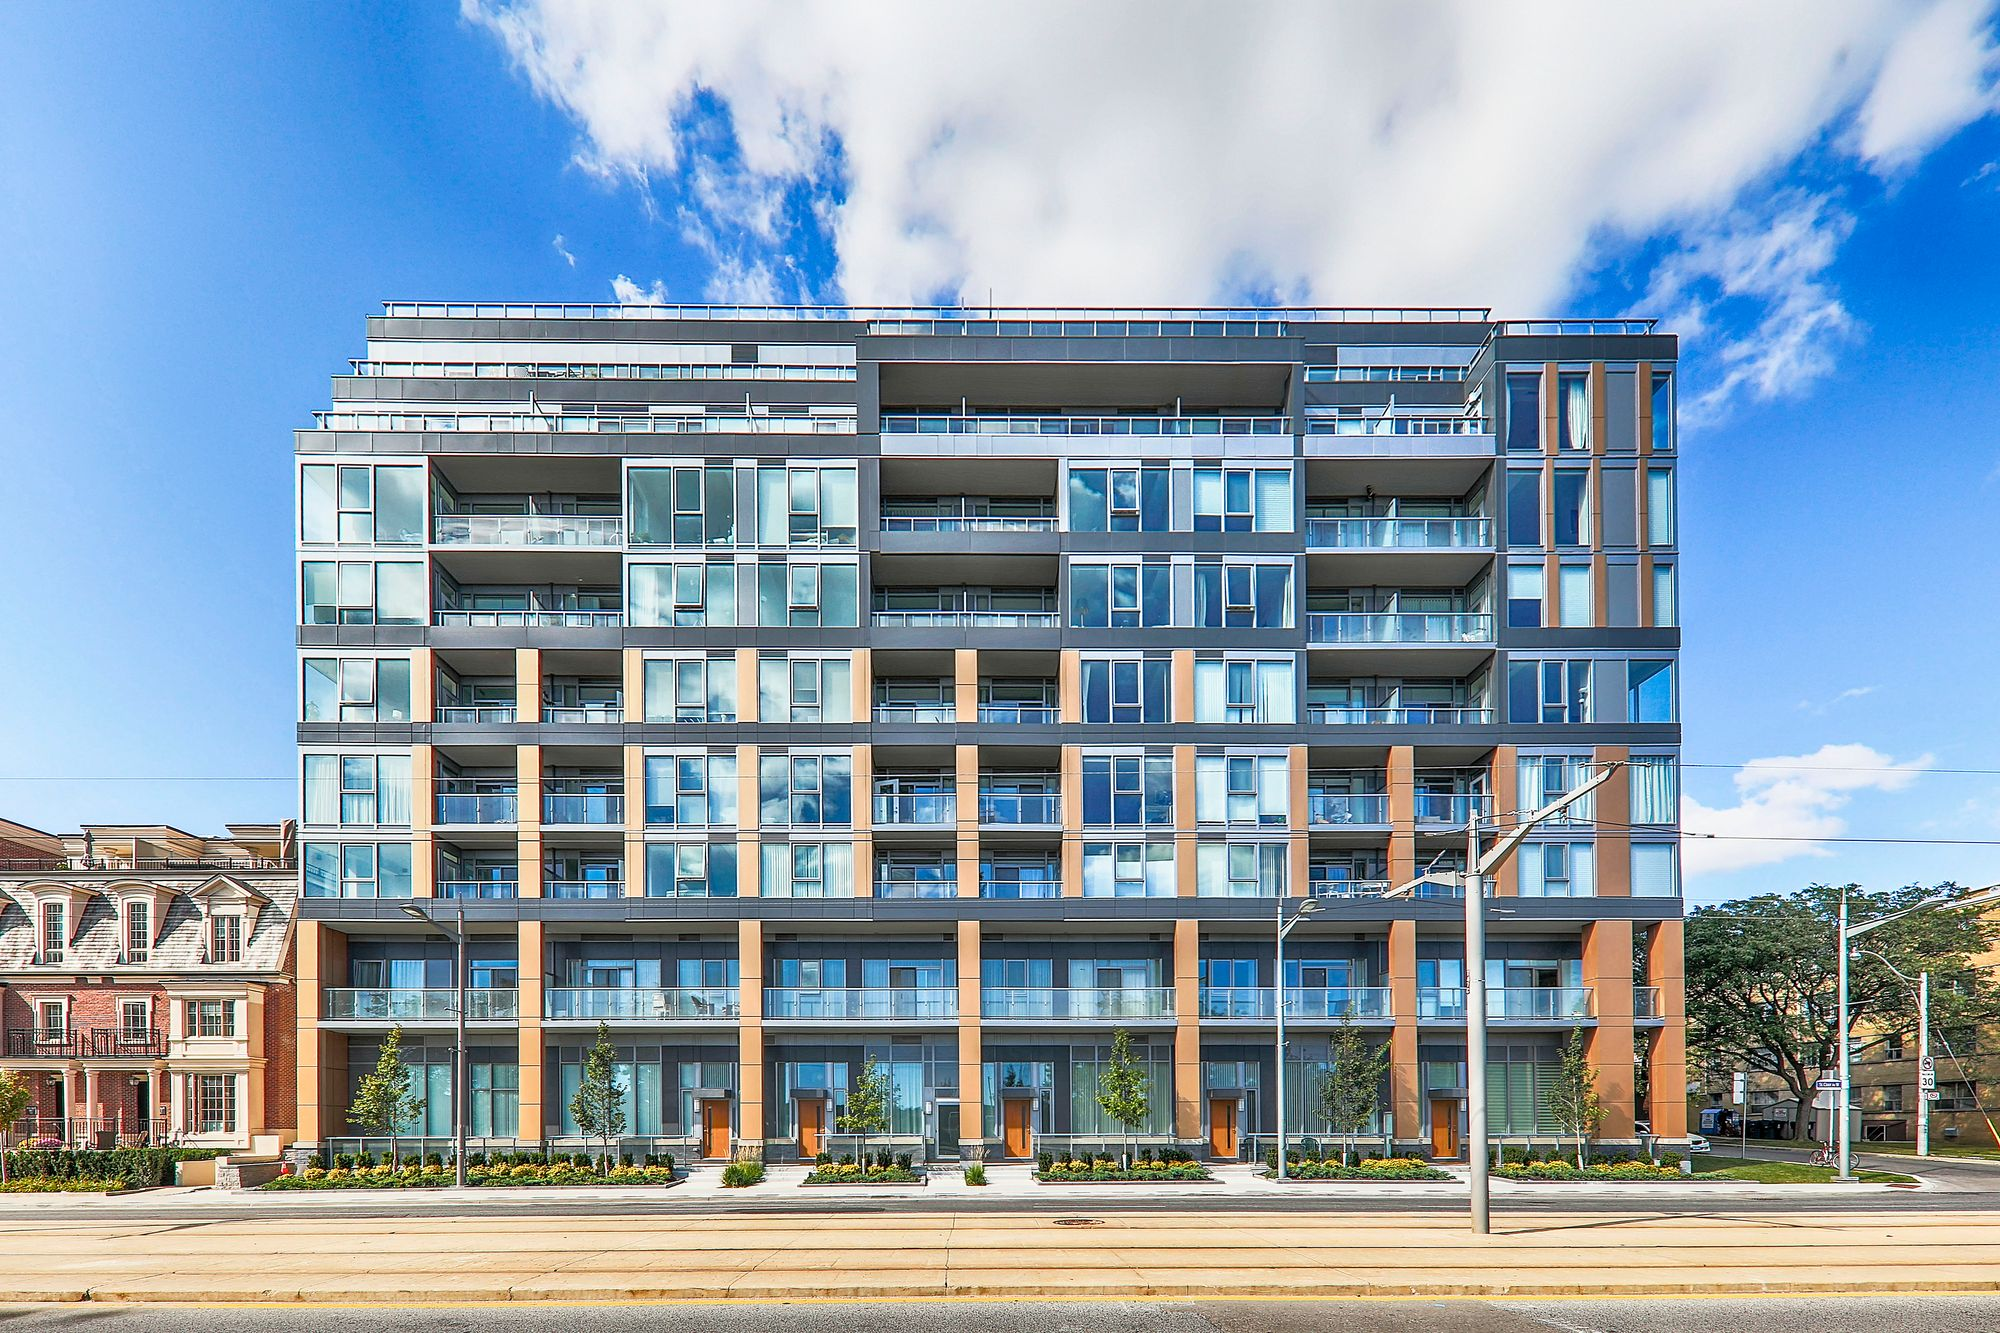 The Code Condos at 6 Parkwood Ave. This condo is located in  Midtown, Toronto - image #2 of 5 by Strata.ca